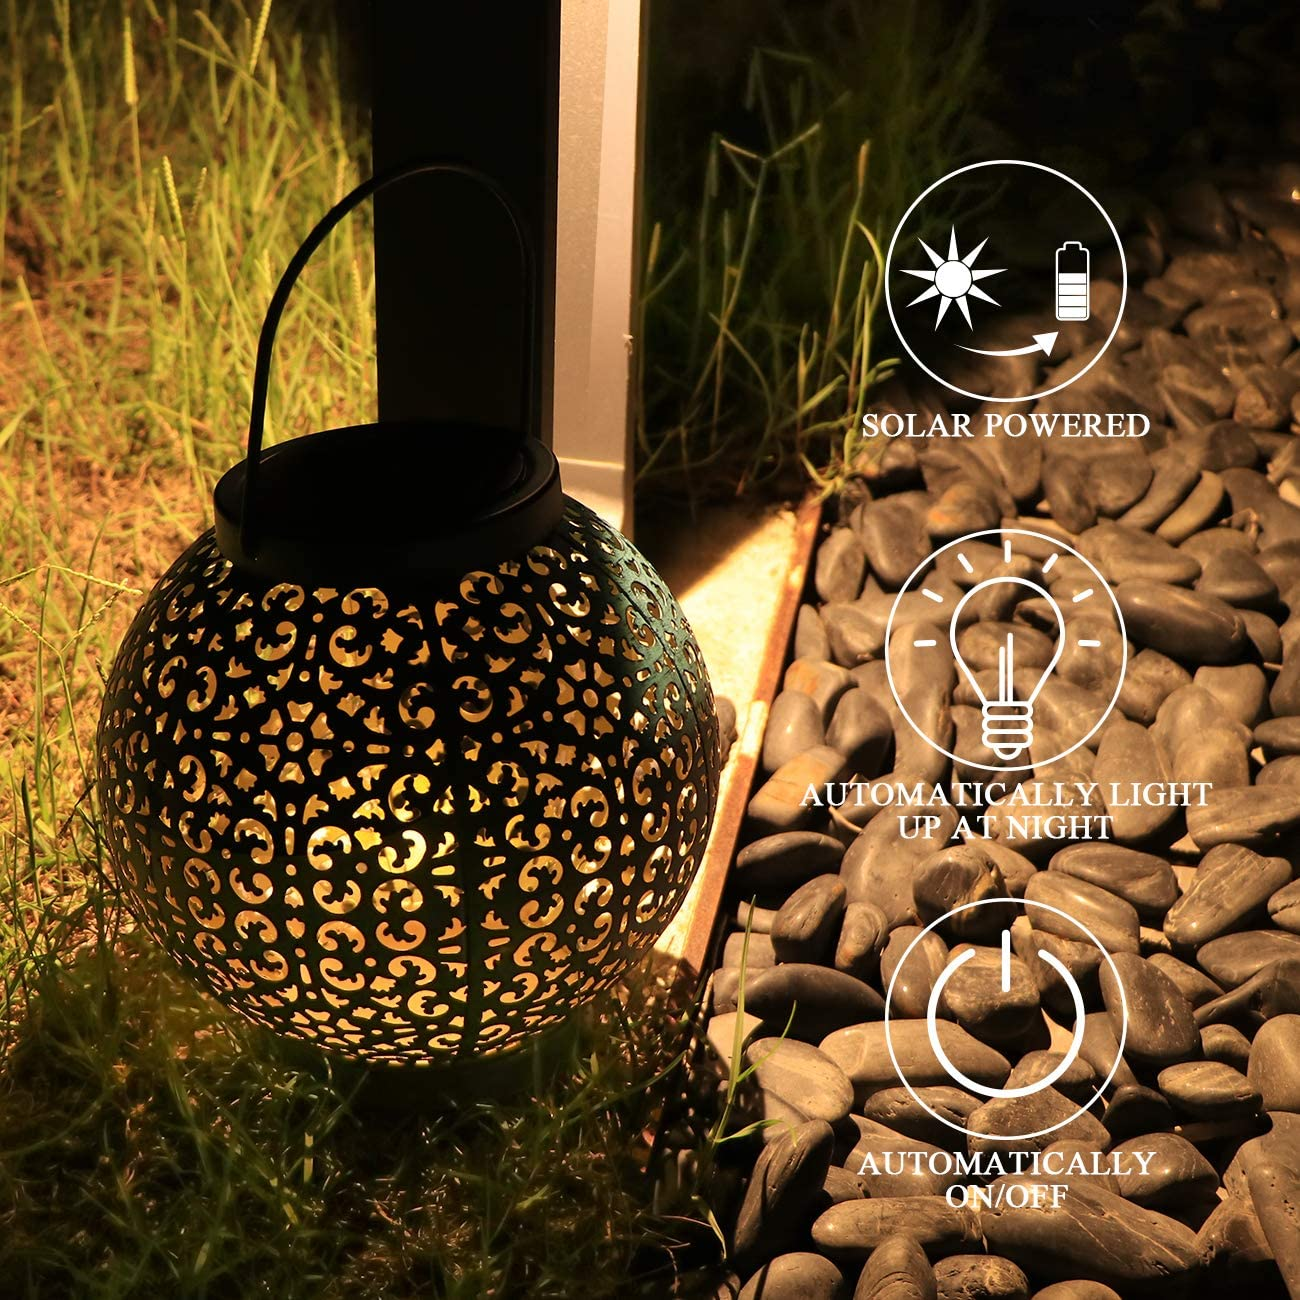 Solar Table Lights Outdoor Solar Powered Metal Ball Garden Light Decoration for Party,Yard,Patio Decorations